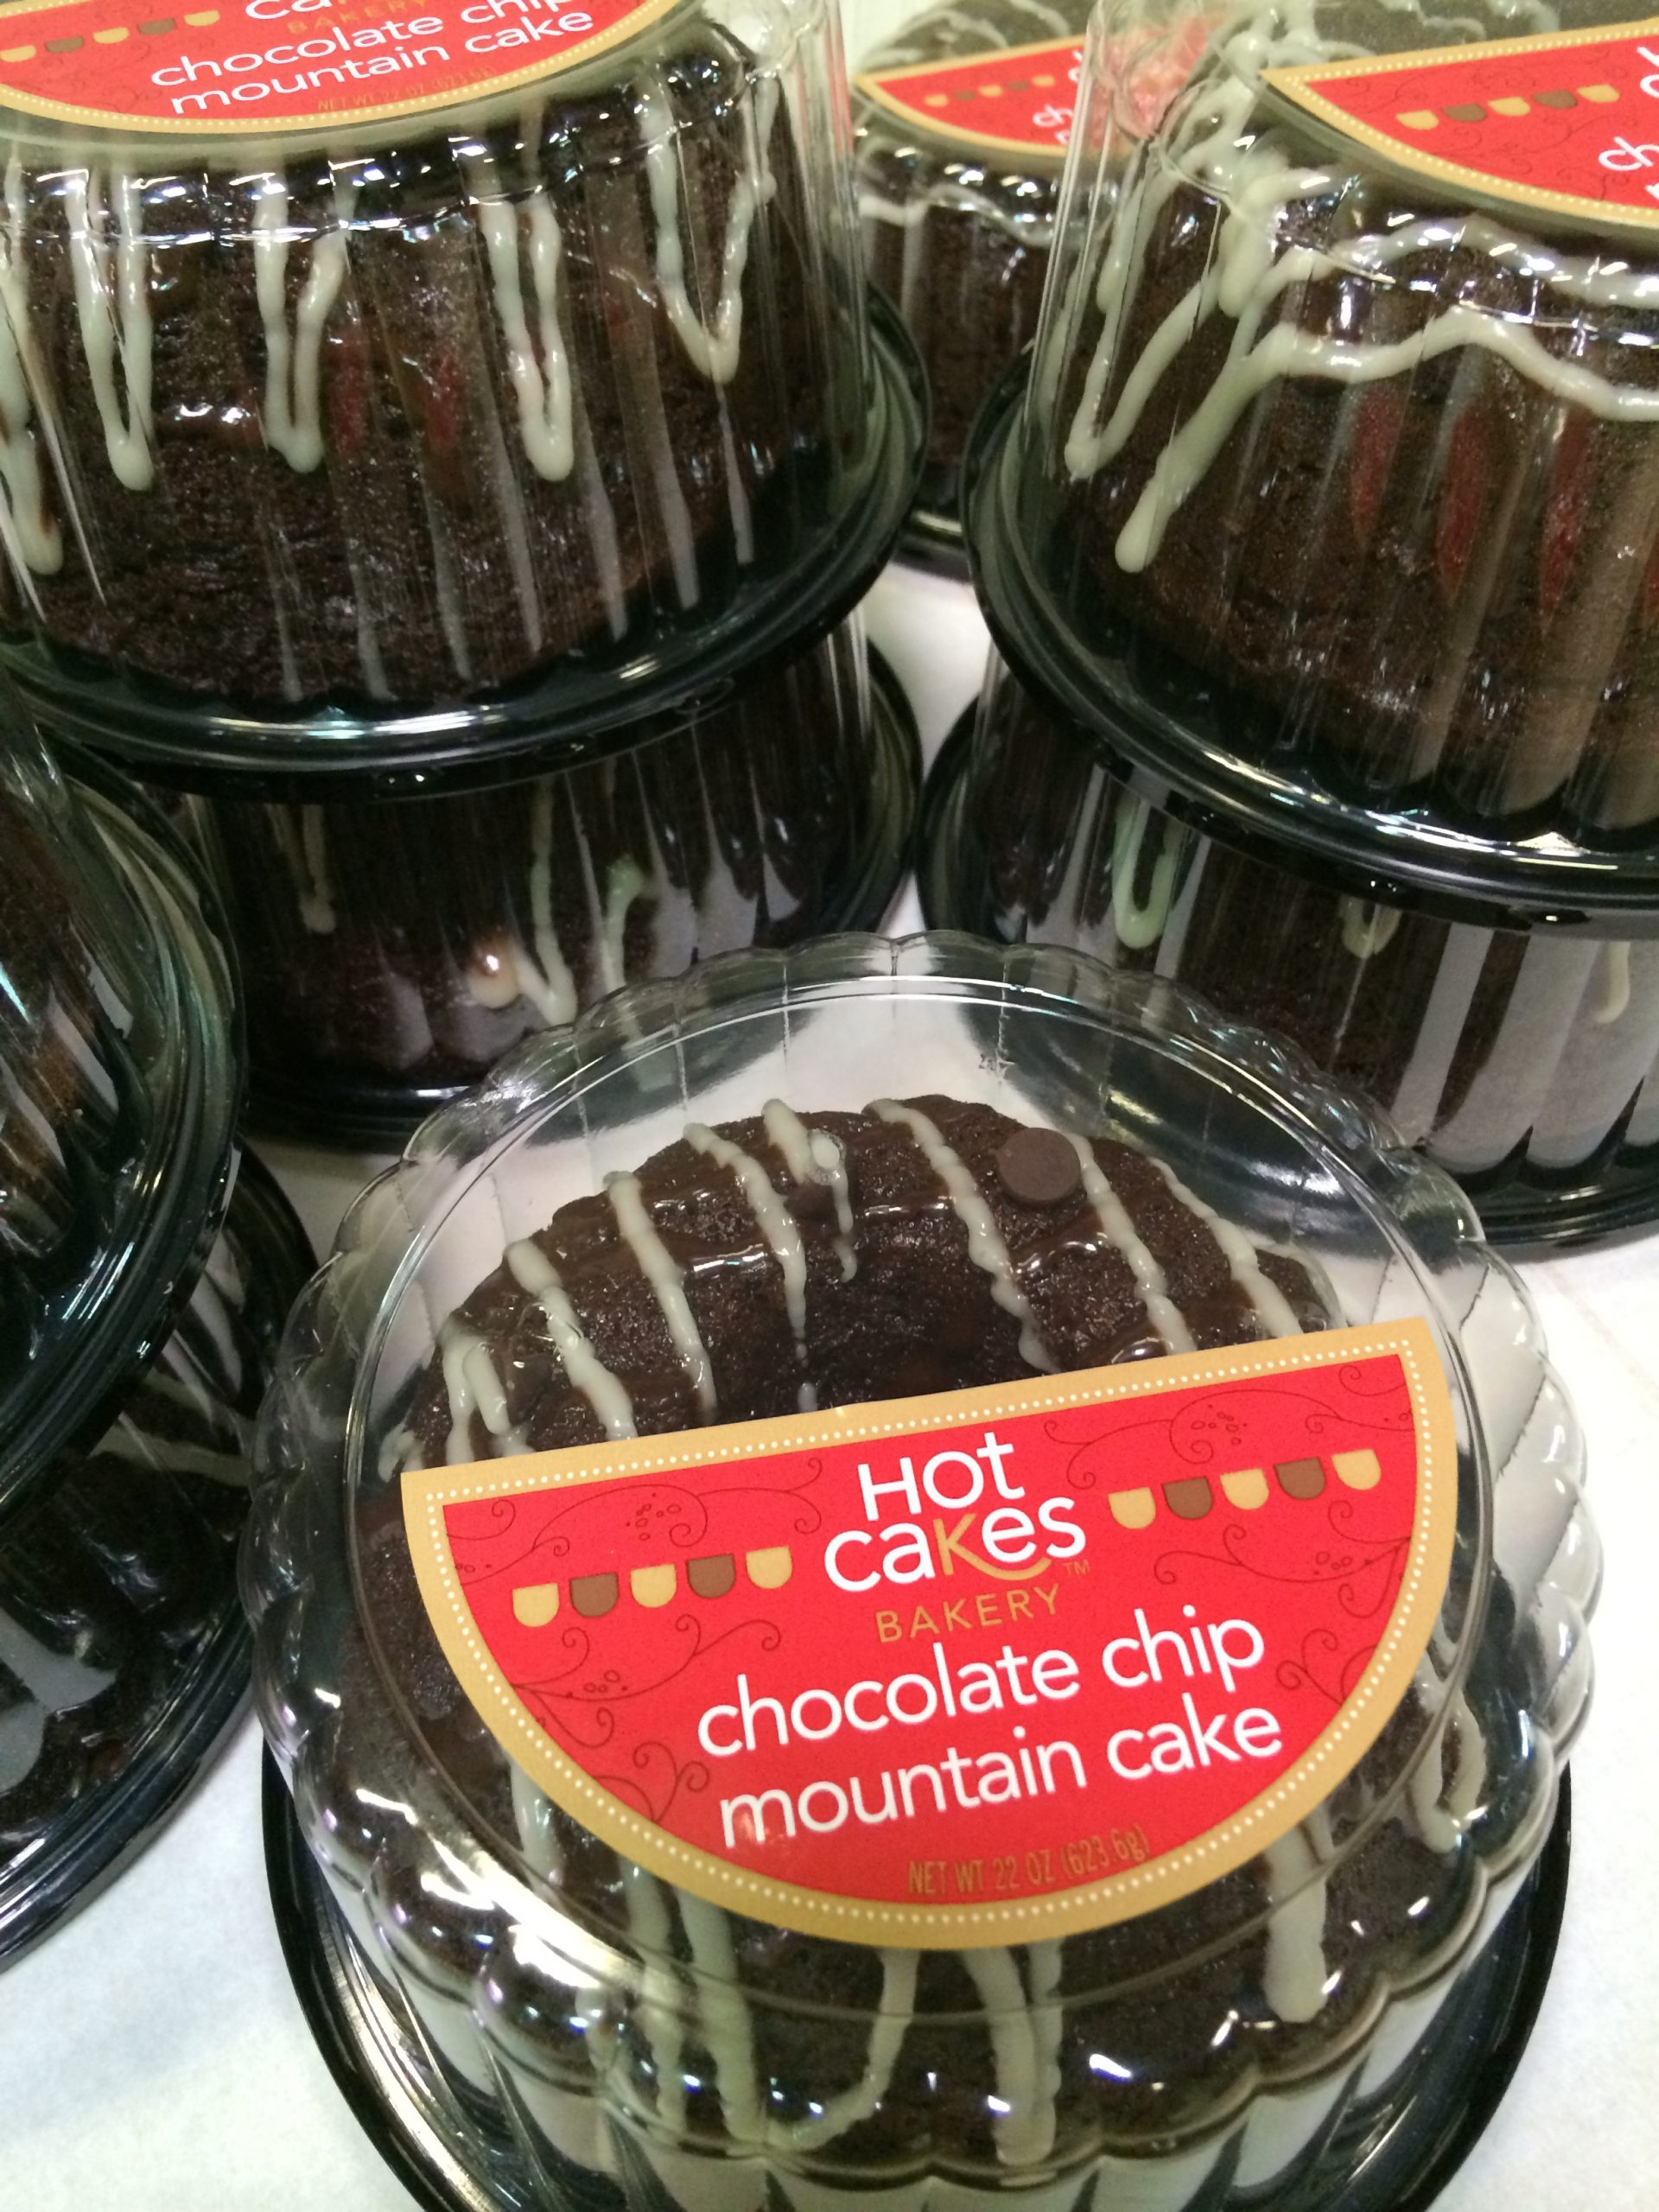 Hot Cakes Bakery - Chocolate Mountain Cake Packaged